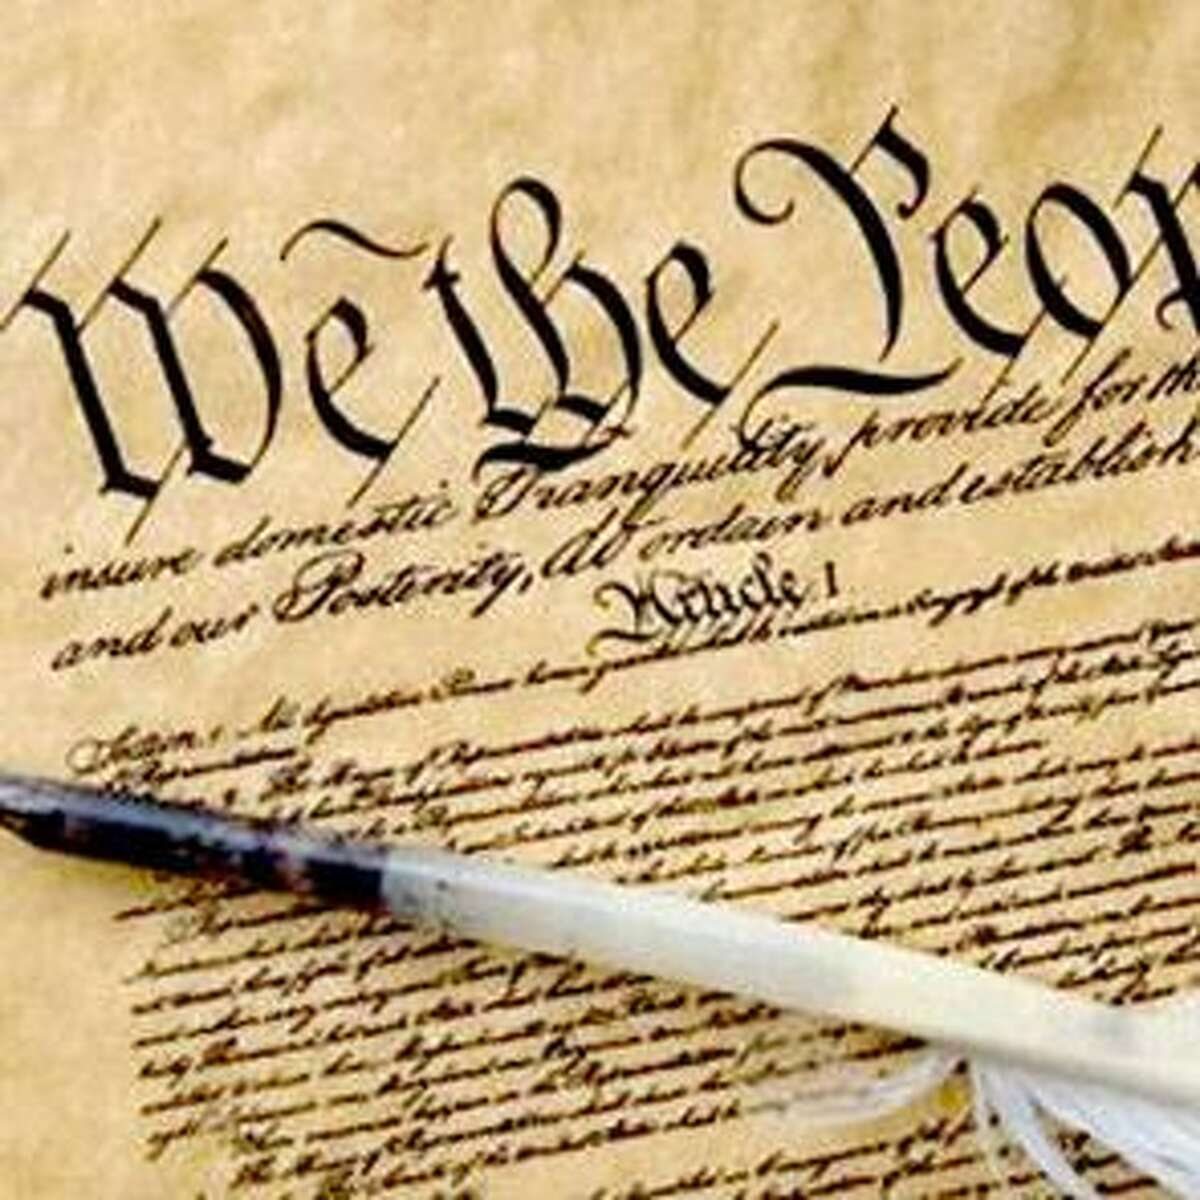 West Shore Community College will be holding a special ceremony to honor the anniversary of the U.S. Constitution on Septt. 17.